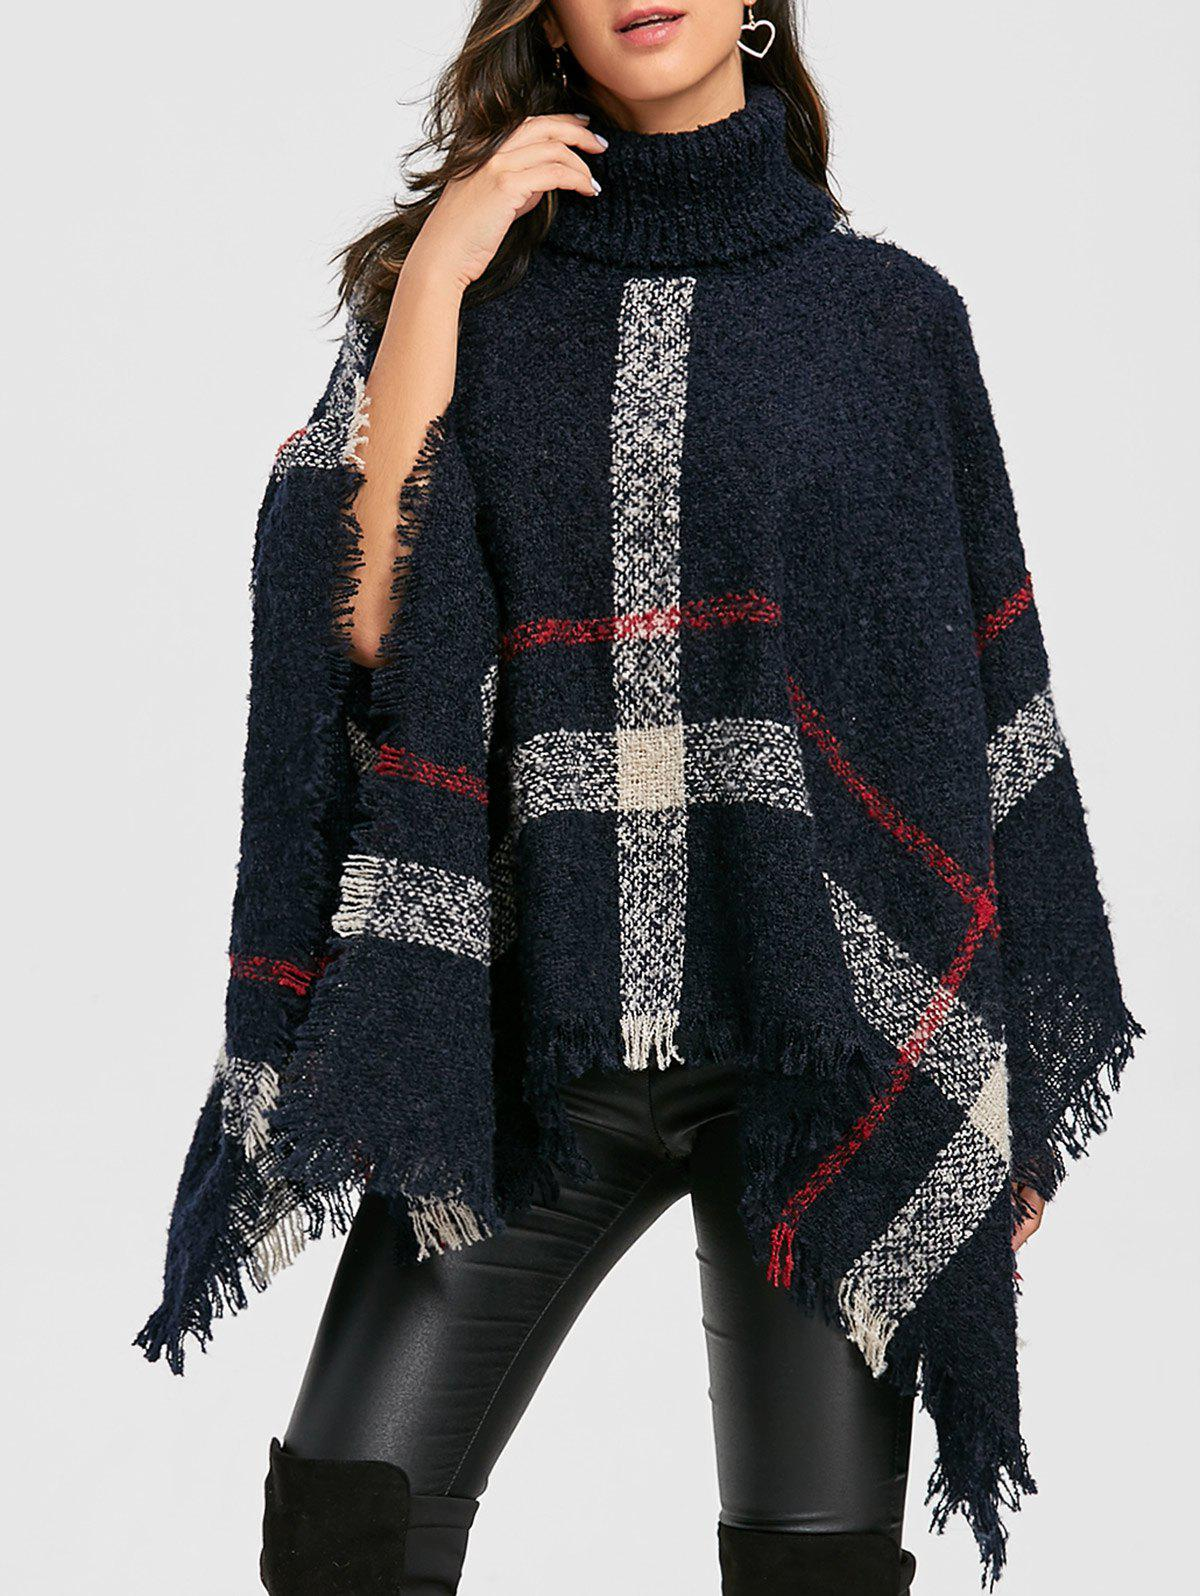 Plaid Handkerchief Turtleneck Poncho SweaterWOMEN<br><br>Size: ONE SIZE; Color: BLACK; Type: Pullovers; Material: Polyester; Sleeve Length: Full; Collar: Turtleneck; Style: Fashion; Pattern Type: Plaid; Embellishment: Tassel; Season: Fall,Spring; Weight: 0.5700kg; Package Contents: 1 x Sweater;